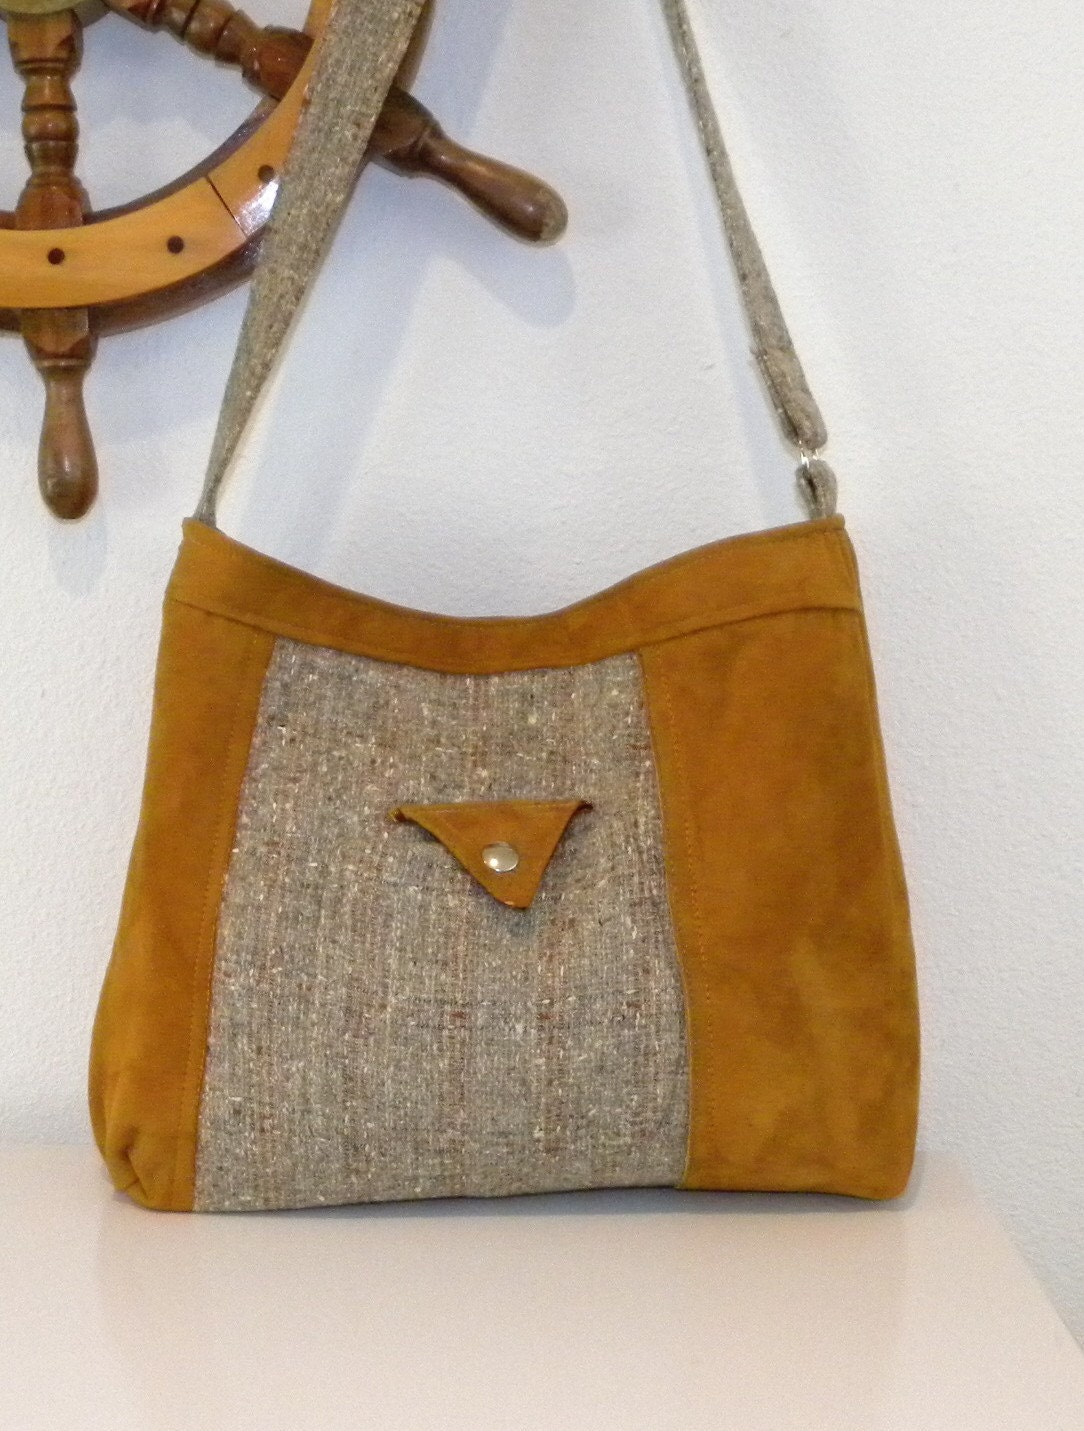 Handmade from a Golden Brown Leather Jacket and Plaid Tweed Coat - Handbag - Tote Bag - Purse